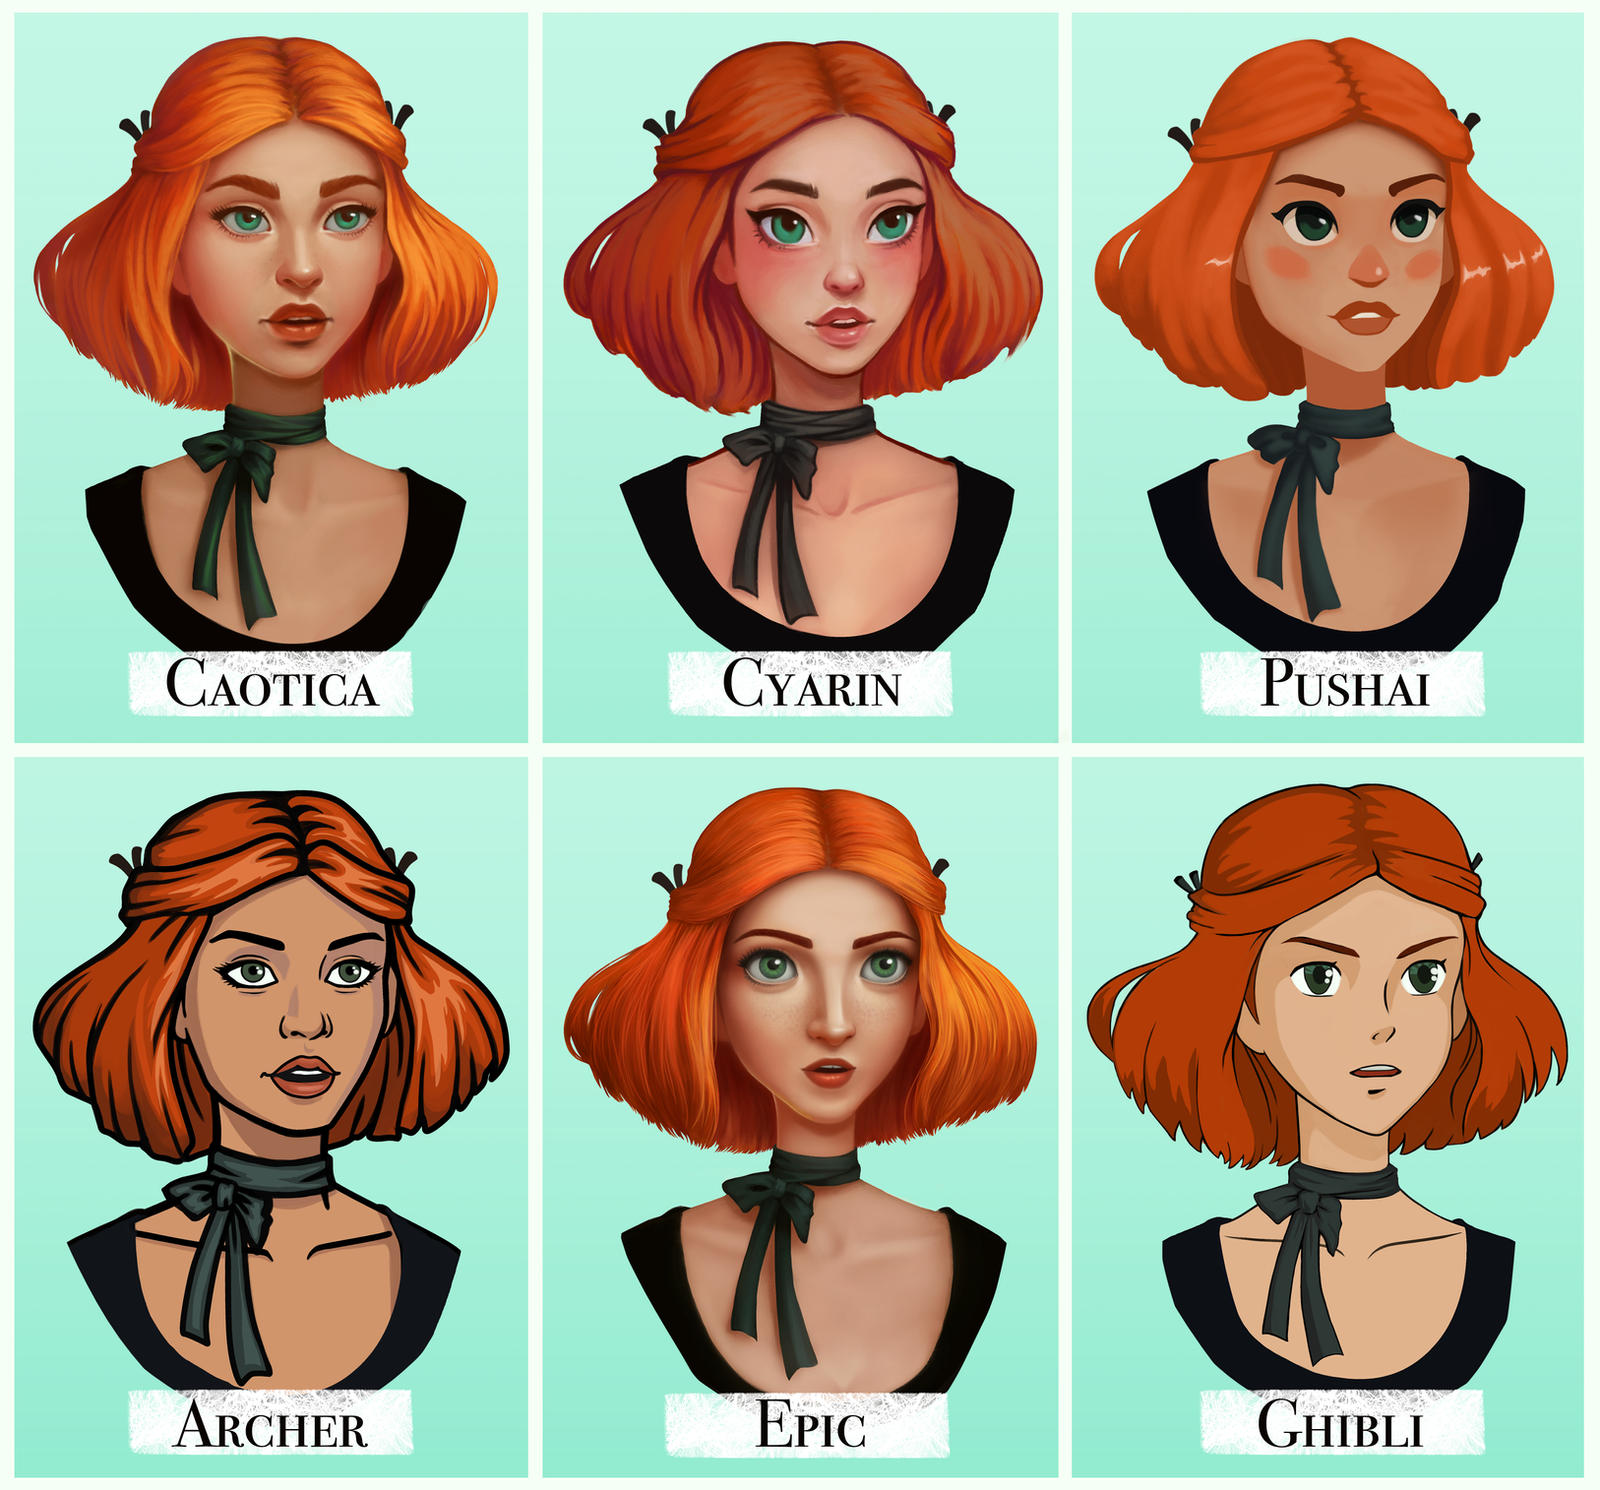 Style Challenge By Caot1ca On DeviantArt